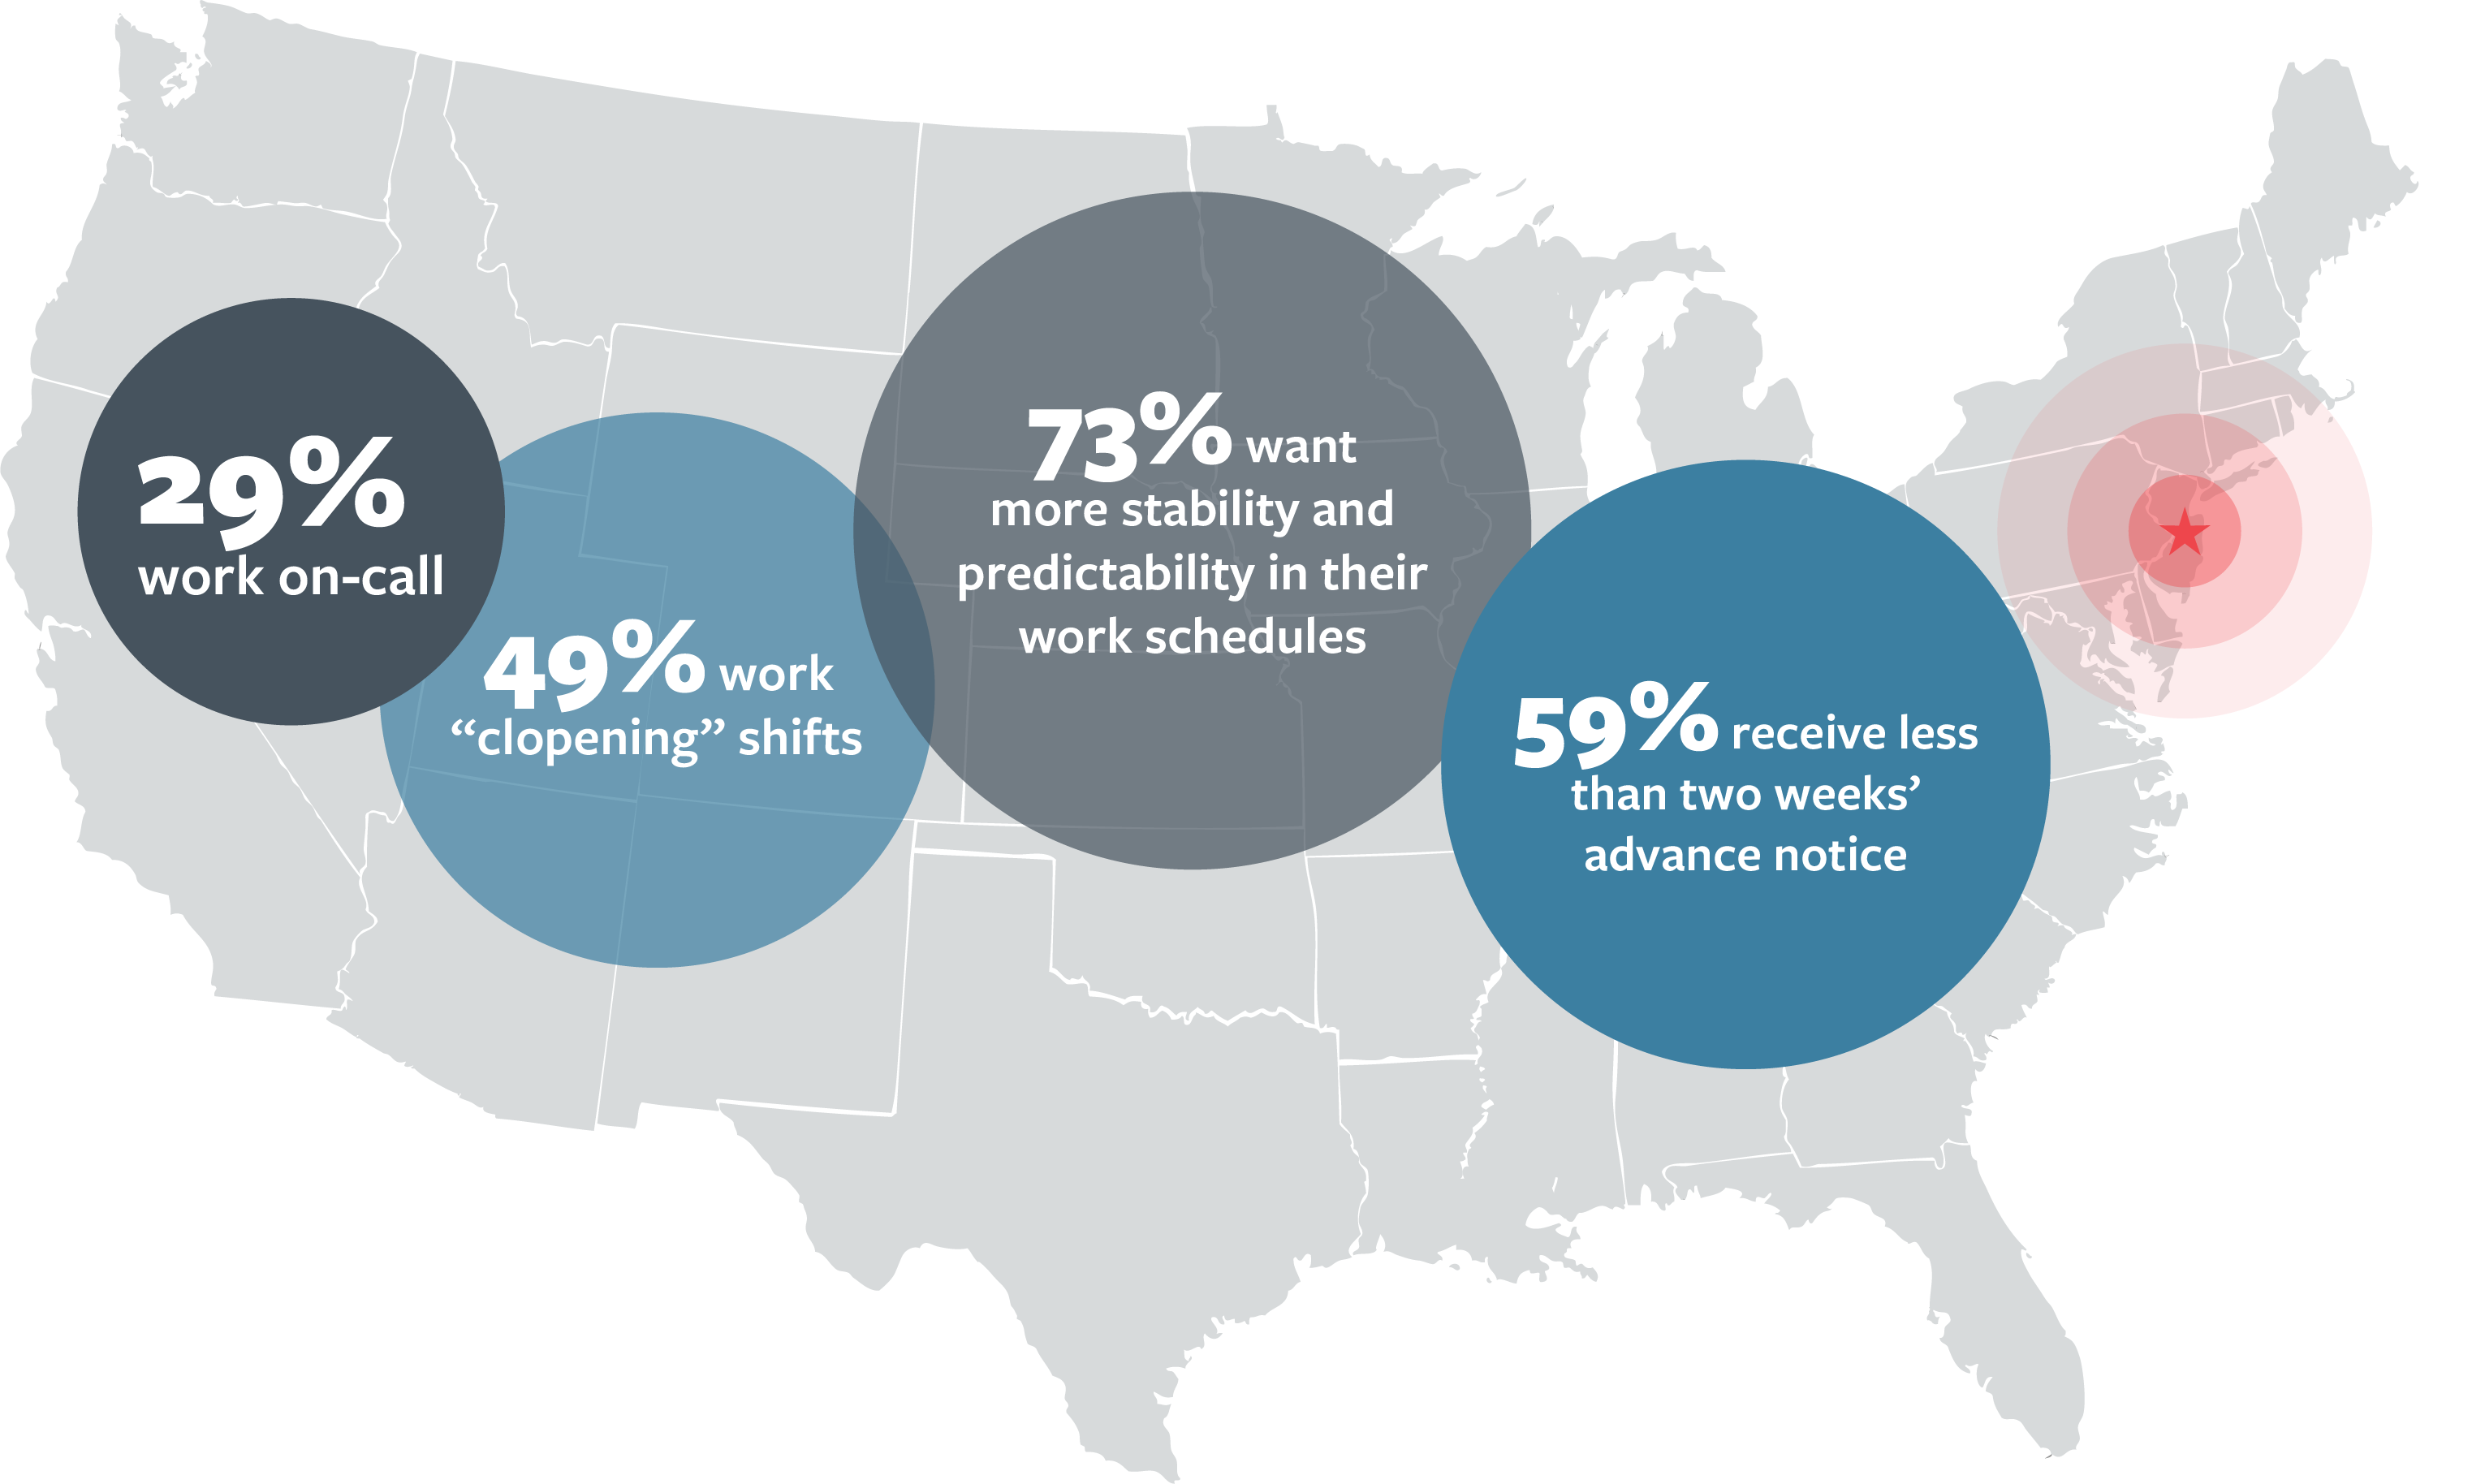 US Map with a target on New Jersey, overlaid with scaled circles and text that says: 29% work on call; 49% work clopping shifts; 73% want more stability and predictability in their work schedules; 59% receive less than two weeks' advance notice